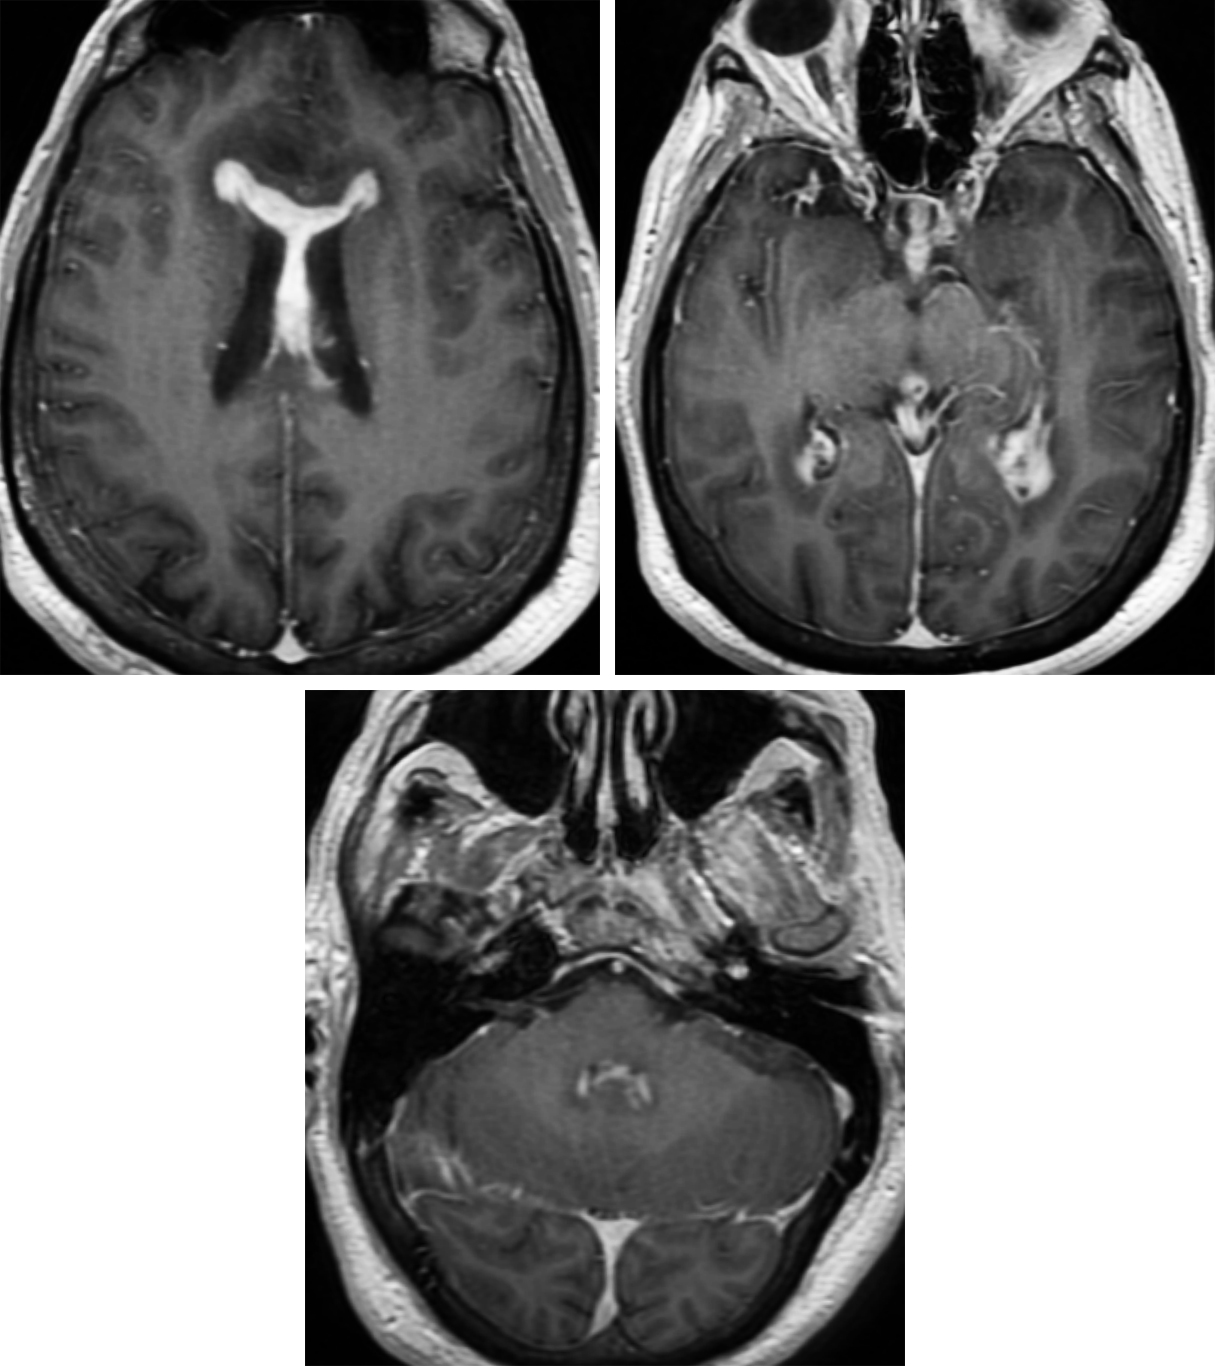 Figure 2: The homogenously enhancing lesion is based on the intraventricular septum and rostrum of the corpus callosum (top left). Enhancement consistent with leptomeningeal metastasis is also demonstrated within the bilateral dependent portion of the lateral ventricular atrium (top right). Leptomeningeal enhancement is also demonstrated within the fourth ventricle (bottom).